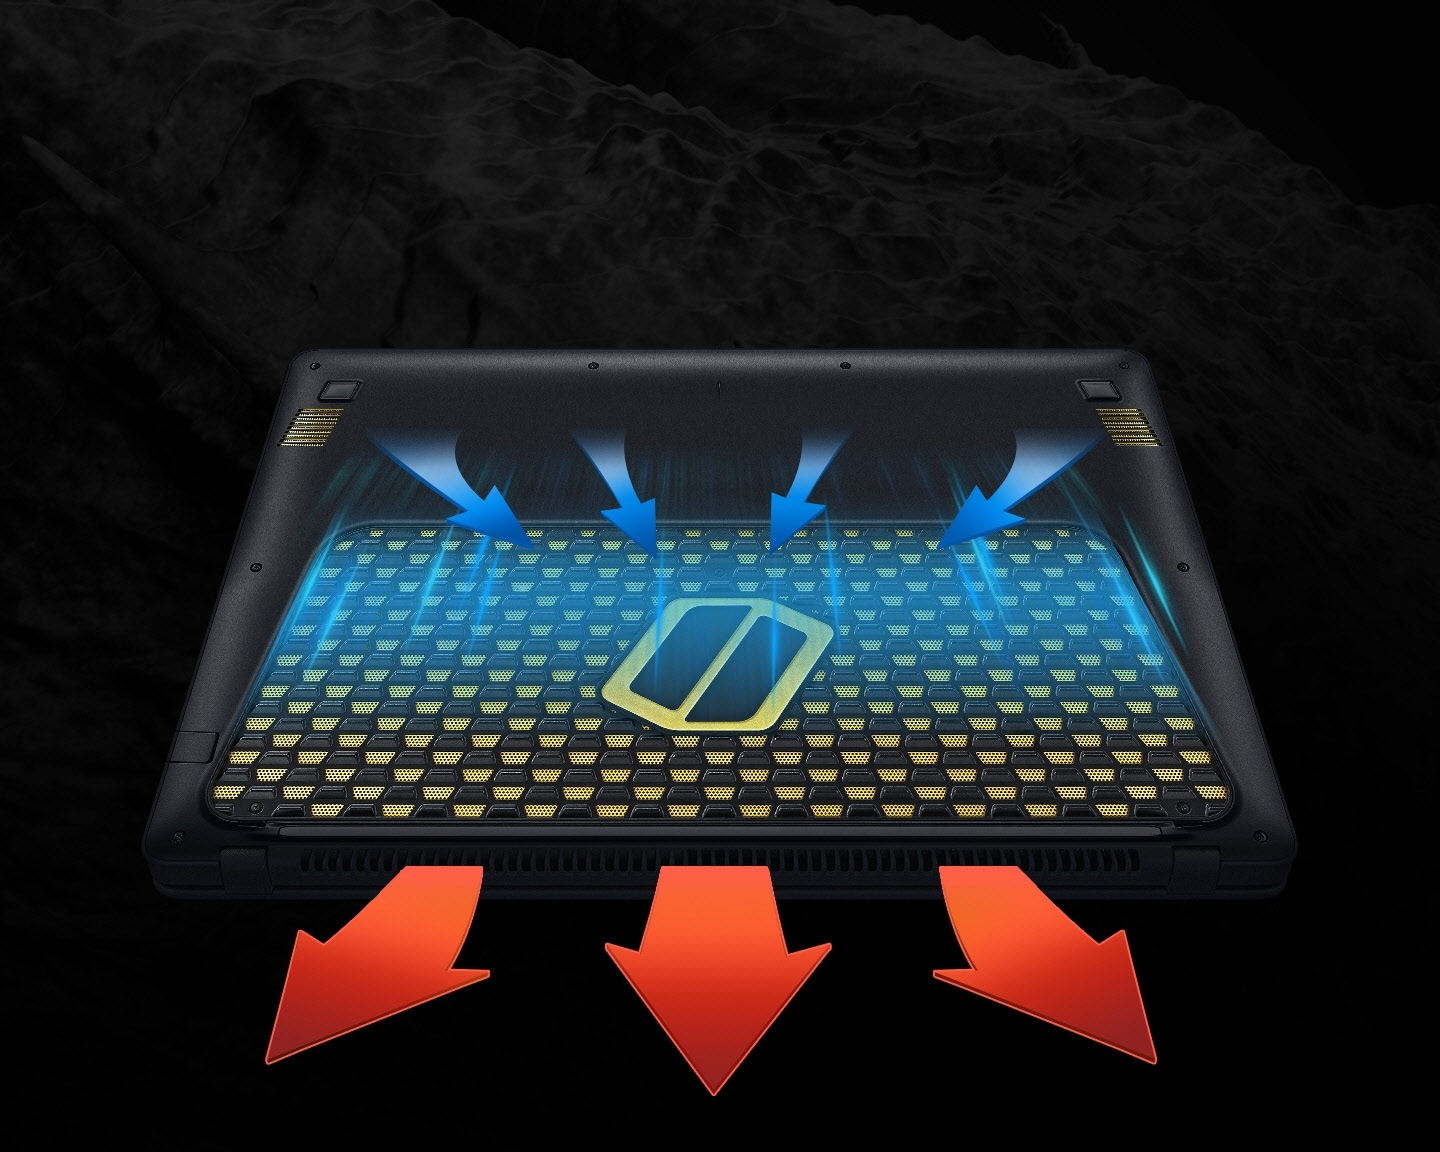 An image of an Samsung Notebook Odyssey device's bottom facing upwards, showing how it absorbs cool air and emits hot air, using arrow graphics